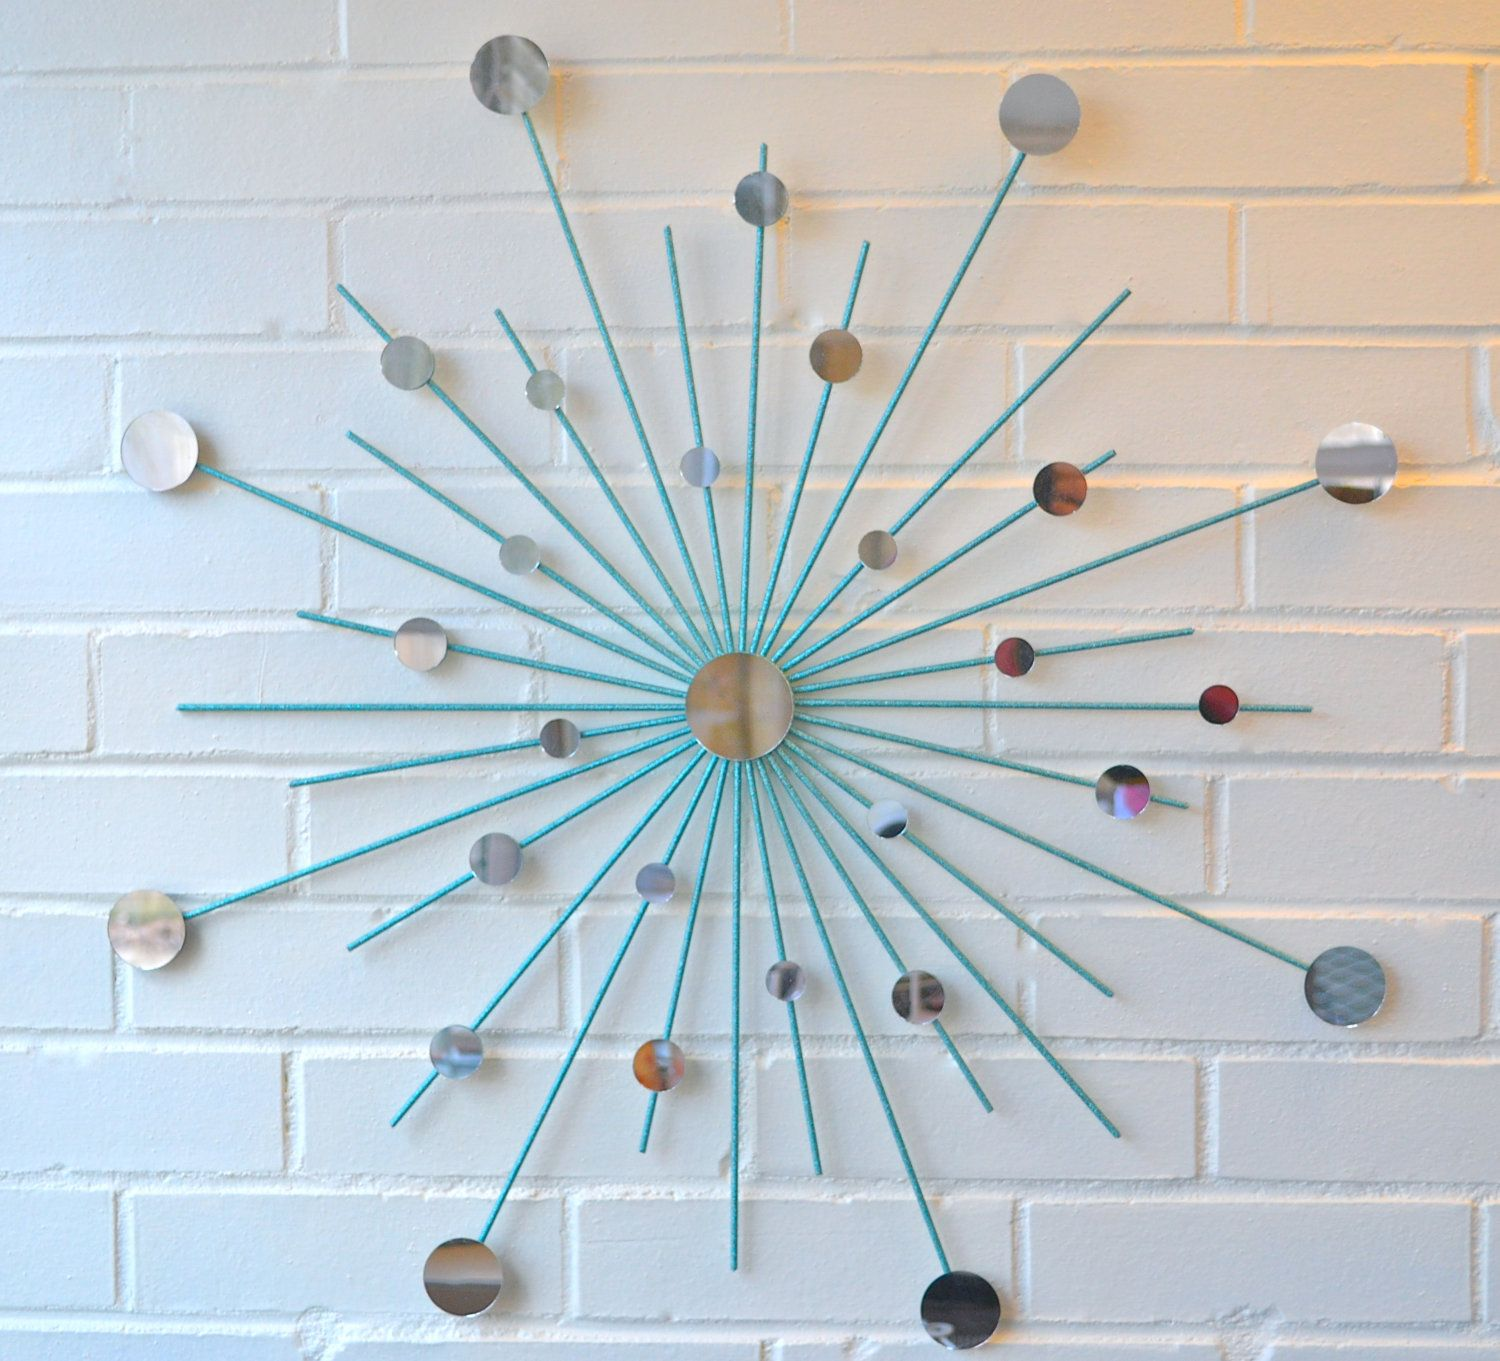 Modern metal wall art mirror mod style star starburst sun sunburst modern metal wall art mirror mod style star starburst sun sunburst in sparkling aqua teal turquoise amipublicfo Choice Image